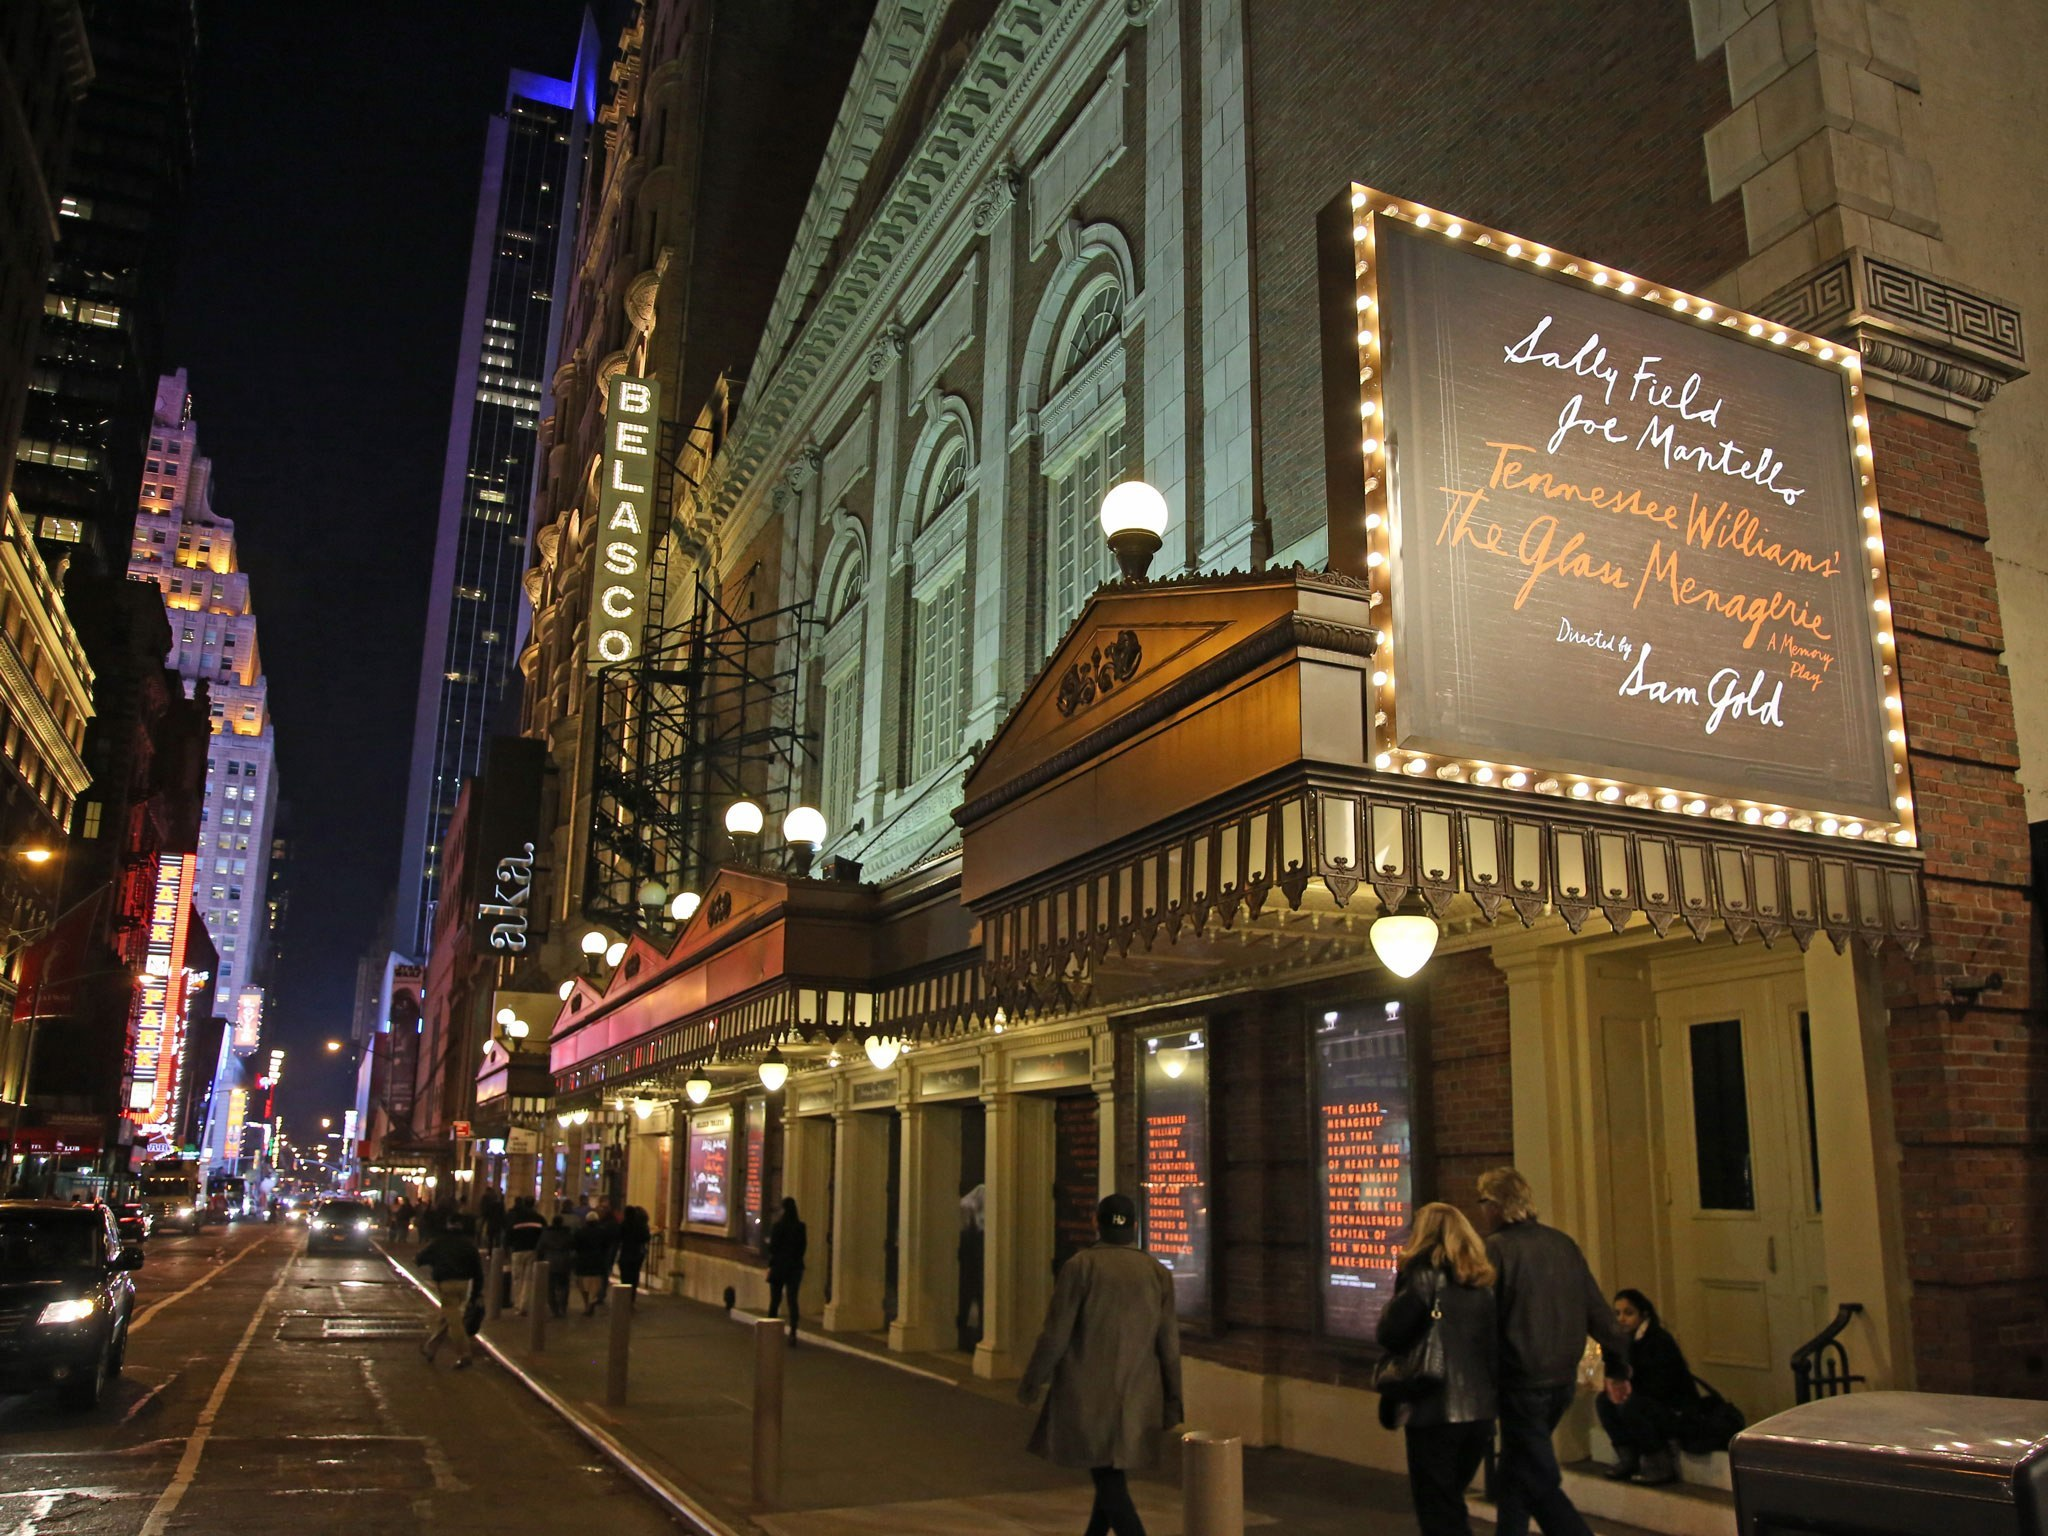 The Glass Menagerie Broadway Theatre Marquee2017